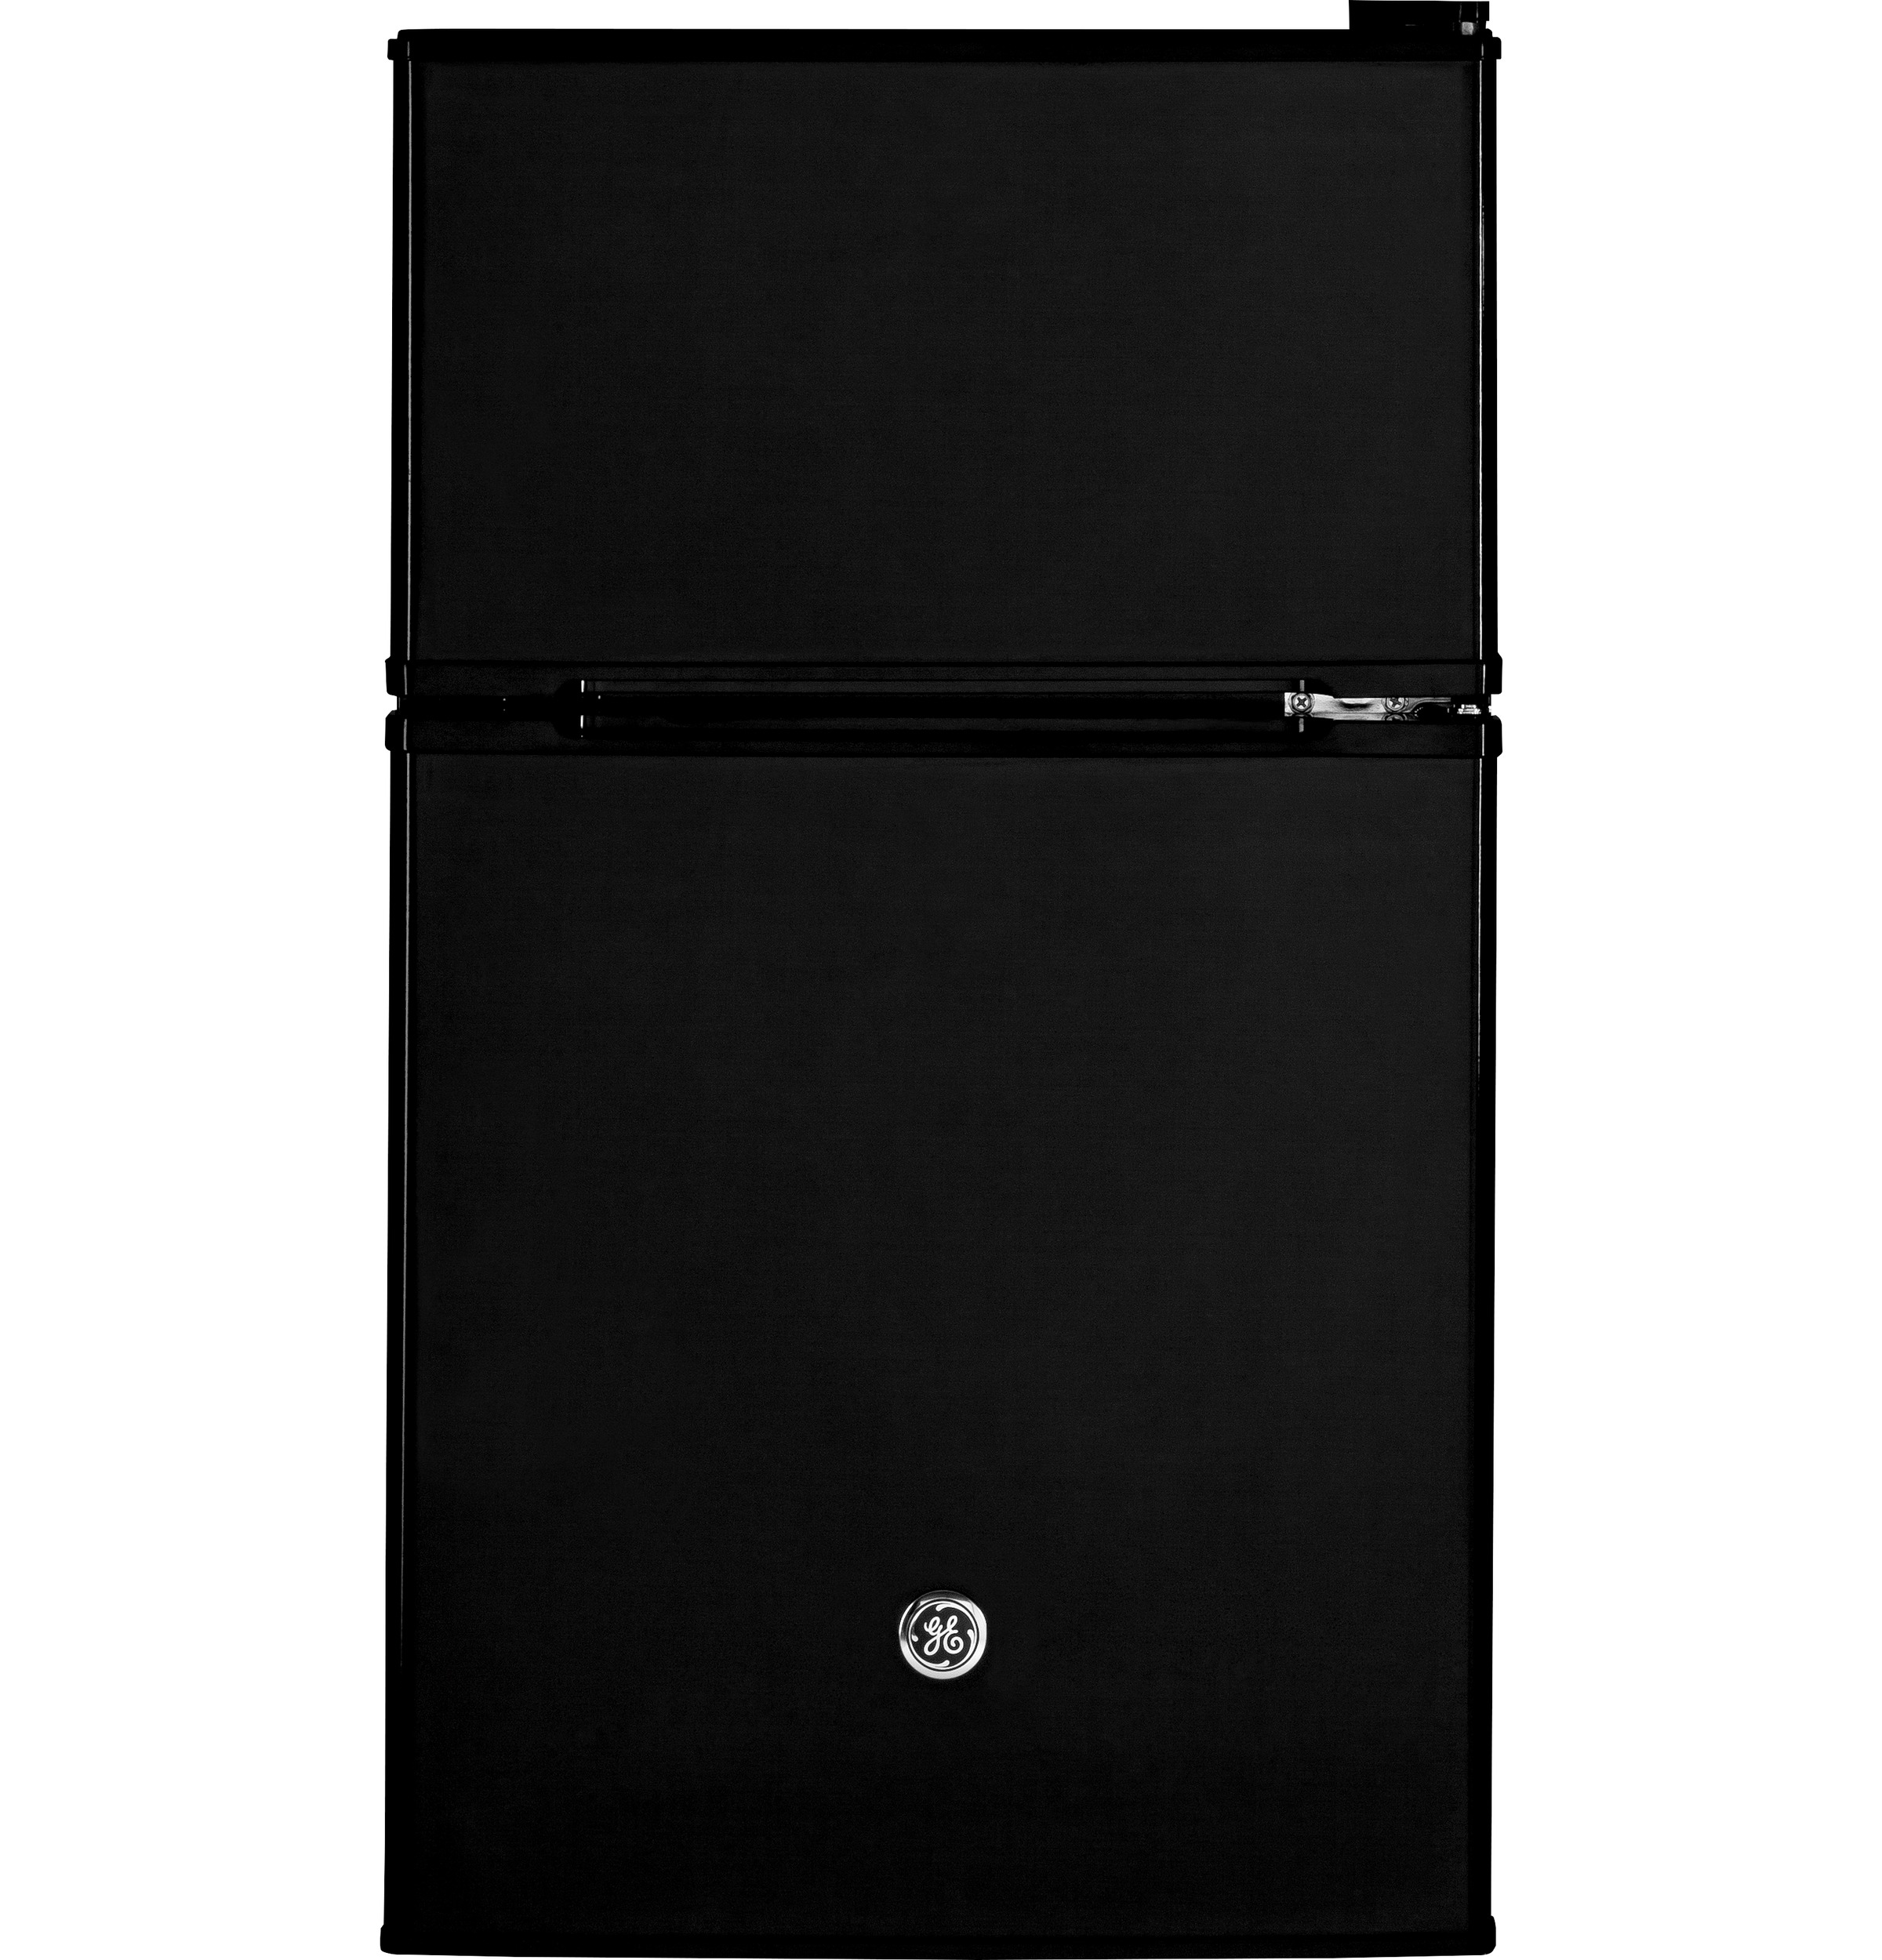 interior doors adjustable dispenser drawer attractive depth ice free stainless refrigerator double door glas light color white bottom fresh right counter steel of food section frost superb shelves full kitchen top black french size handles freezer mesmerizing water defrost and filter led